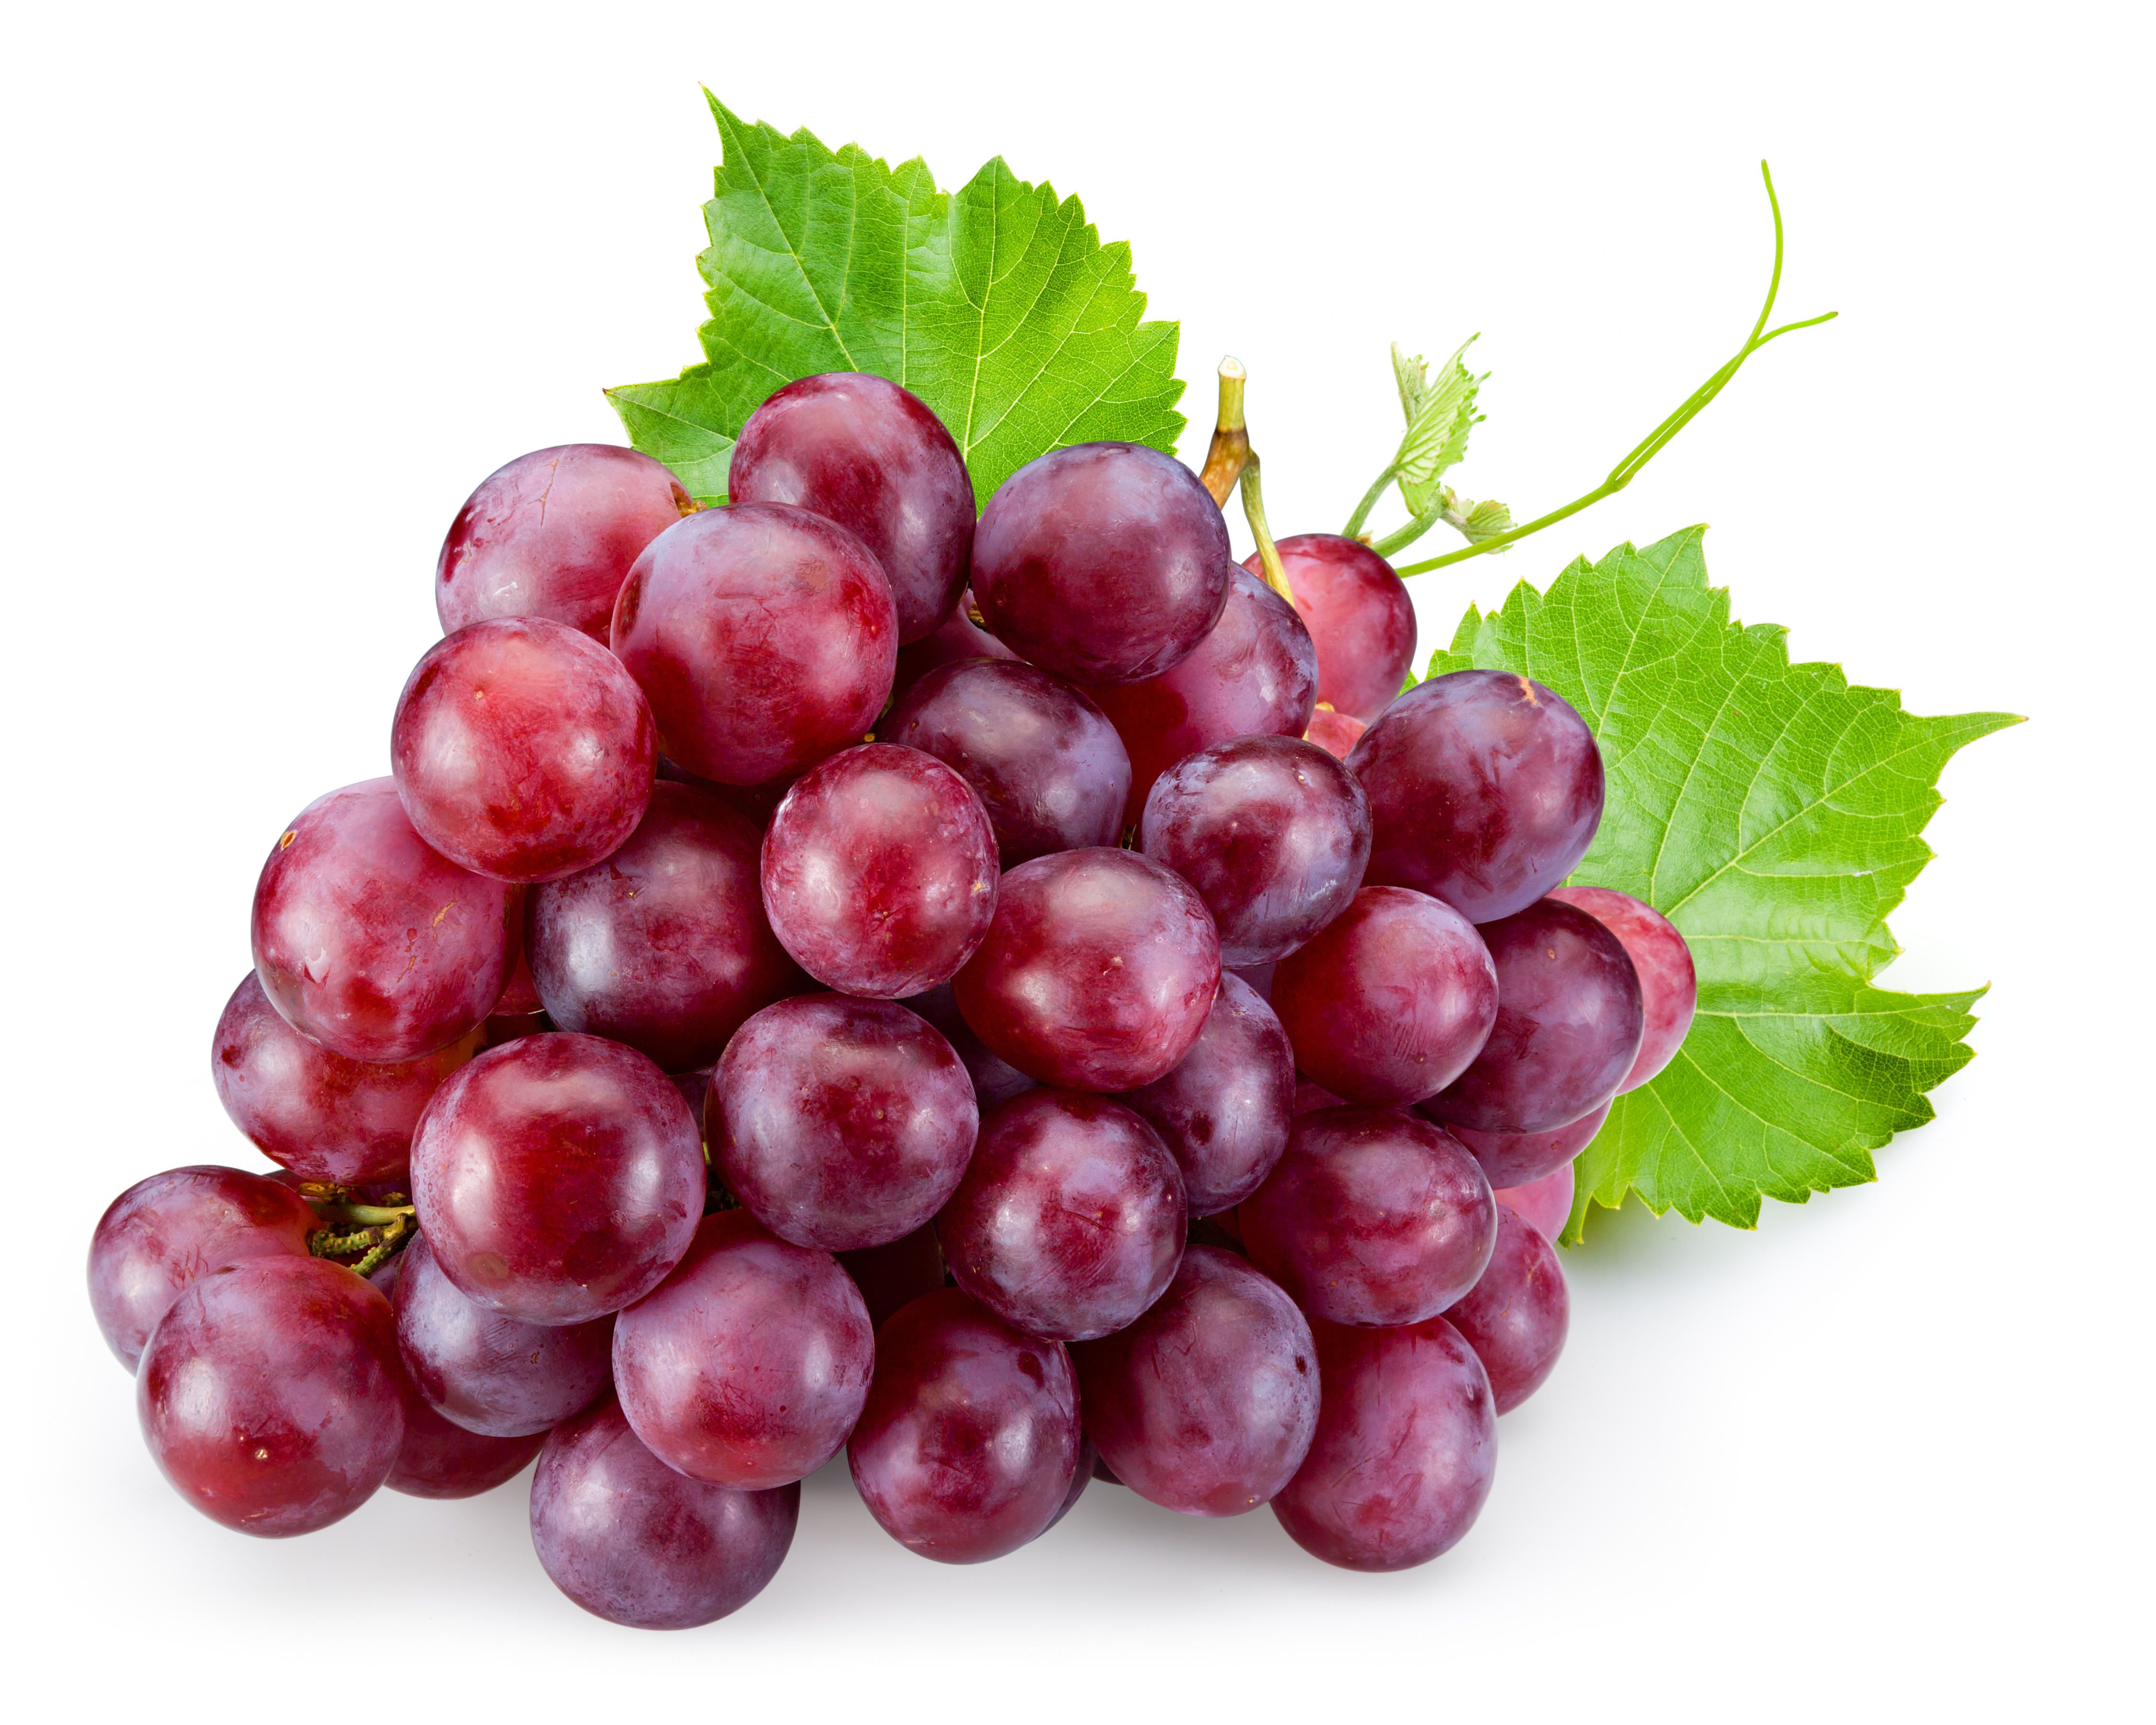 Save 20% On Grapes With New SavingStar Offer